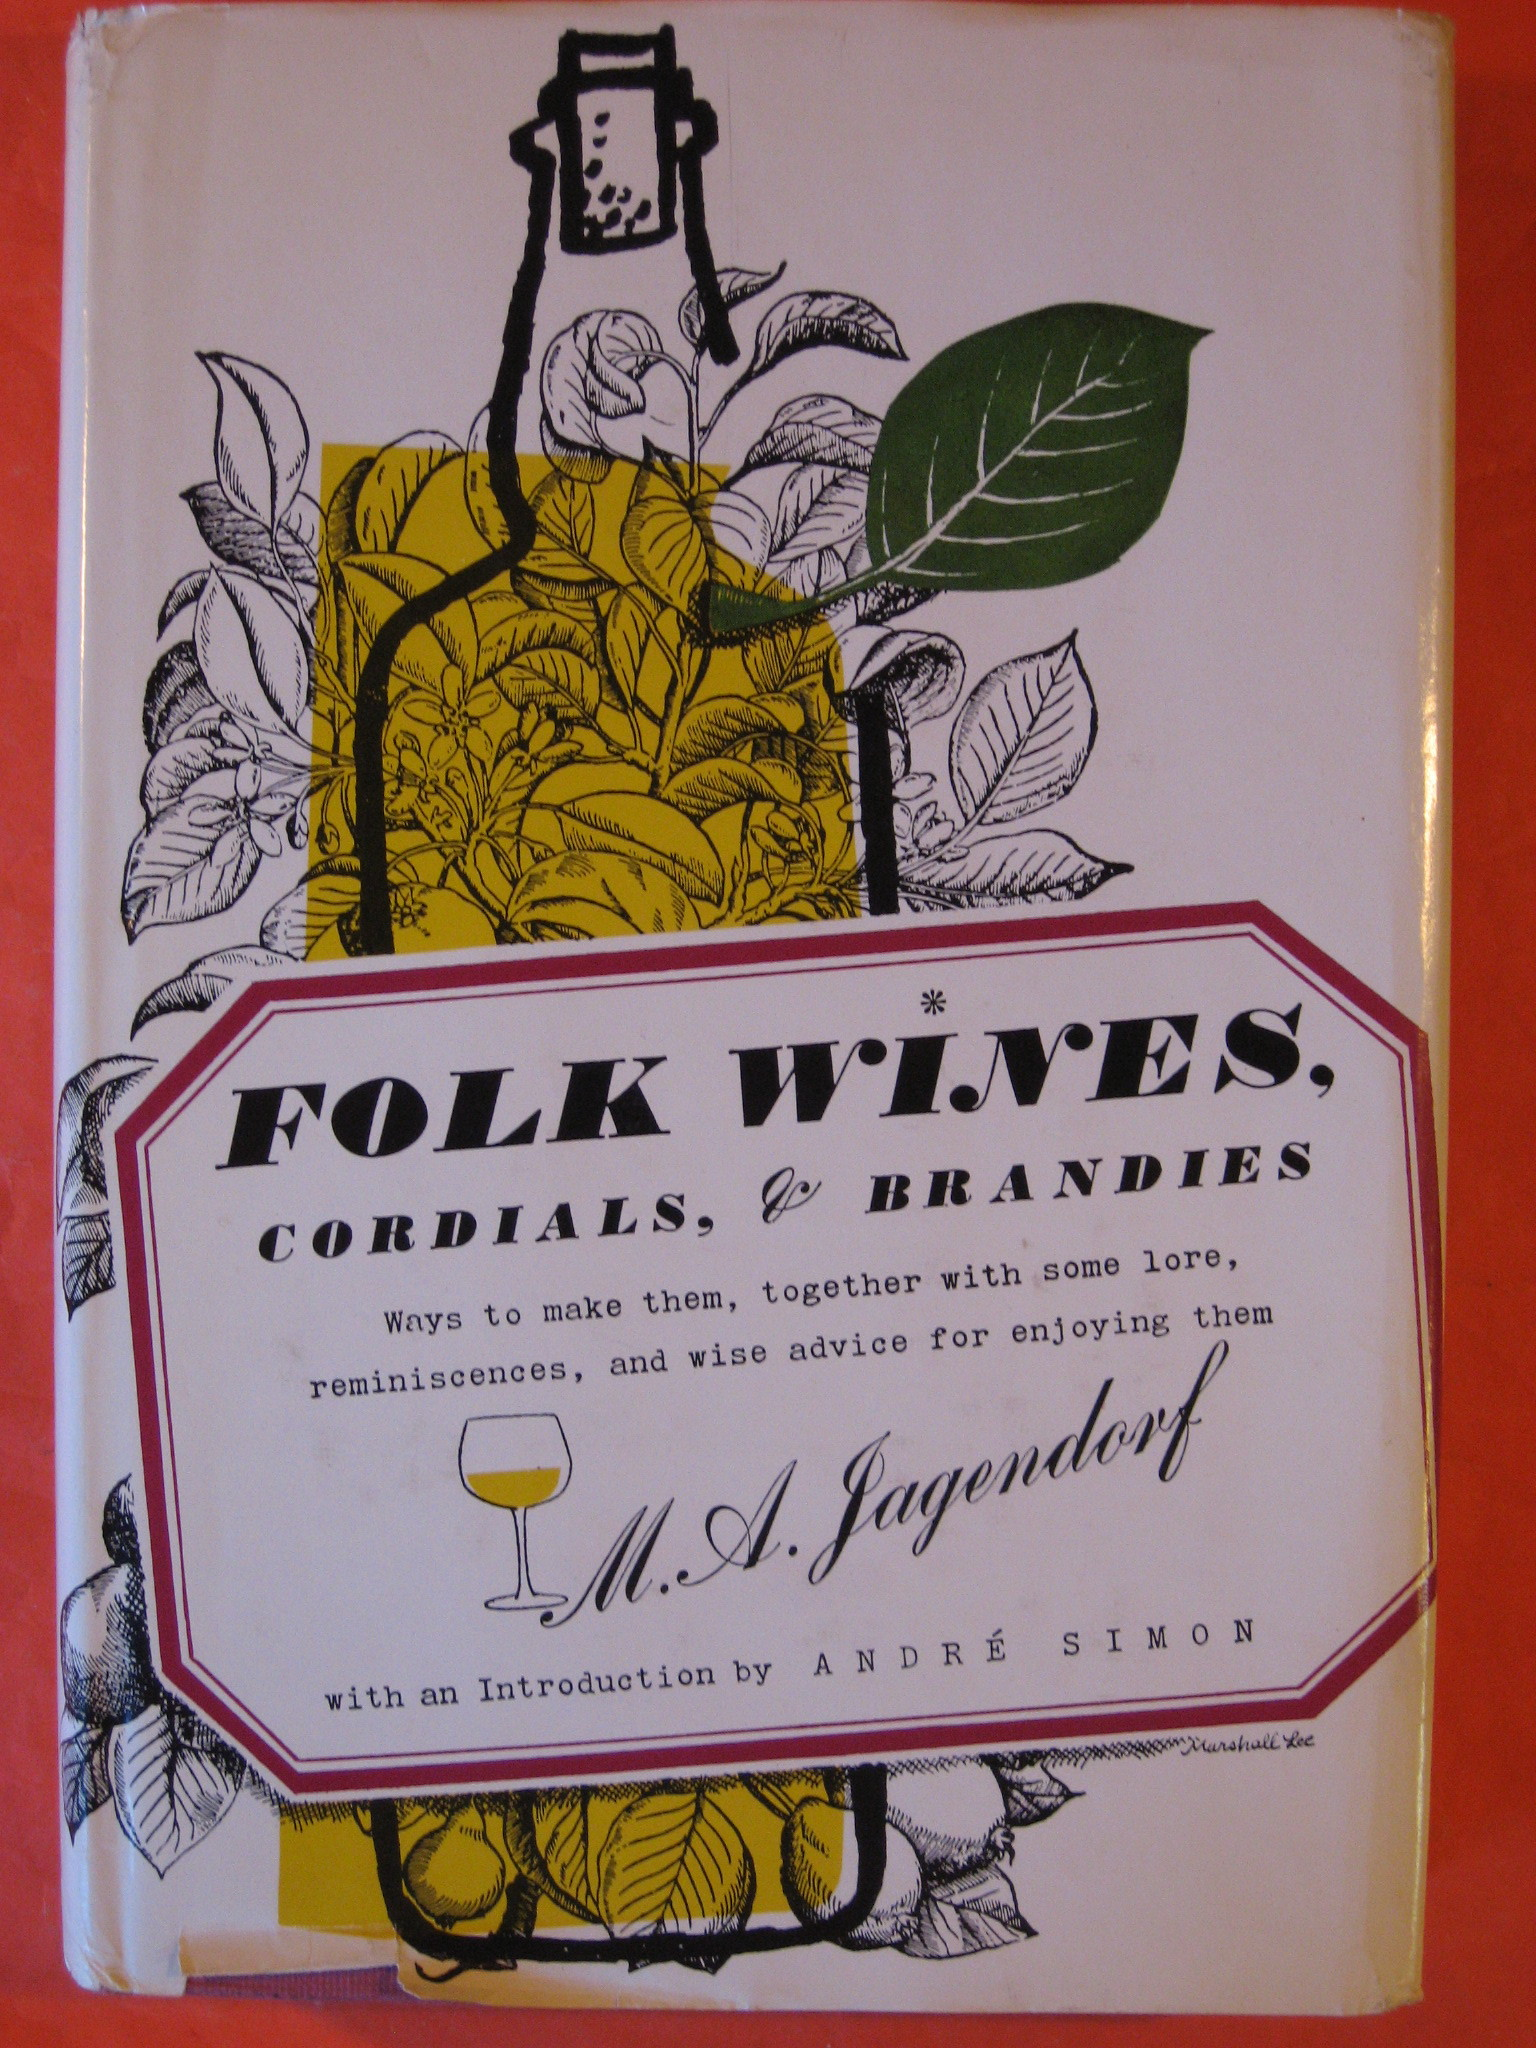 Folk Wines, Cordials, Brandies: Ways to Make Them, Together with Some Lore, Reminiscences and Wise Advice for Enjoying Them, Jagendorf, M.A.